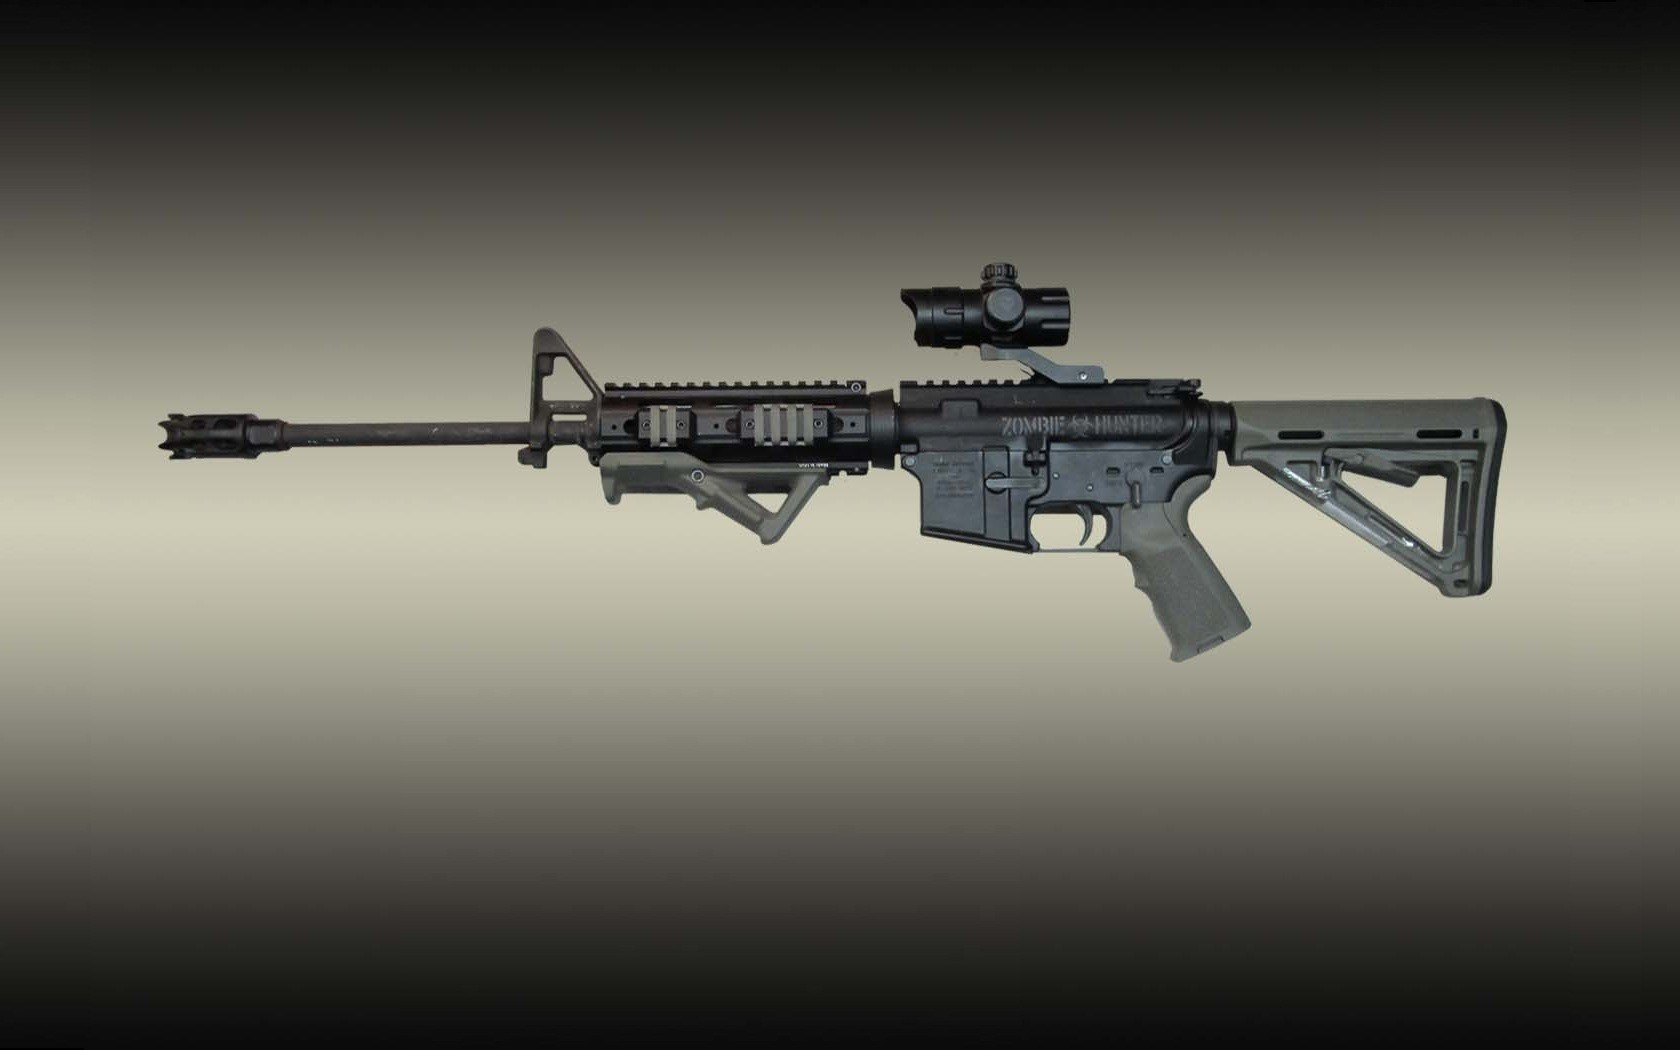 Ar15 Wallpaper 1920x1080 Rifle guns wallpaper 1680x1050